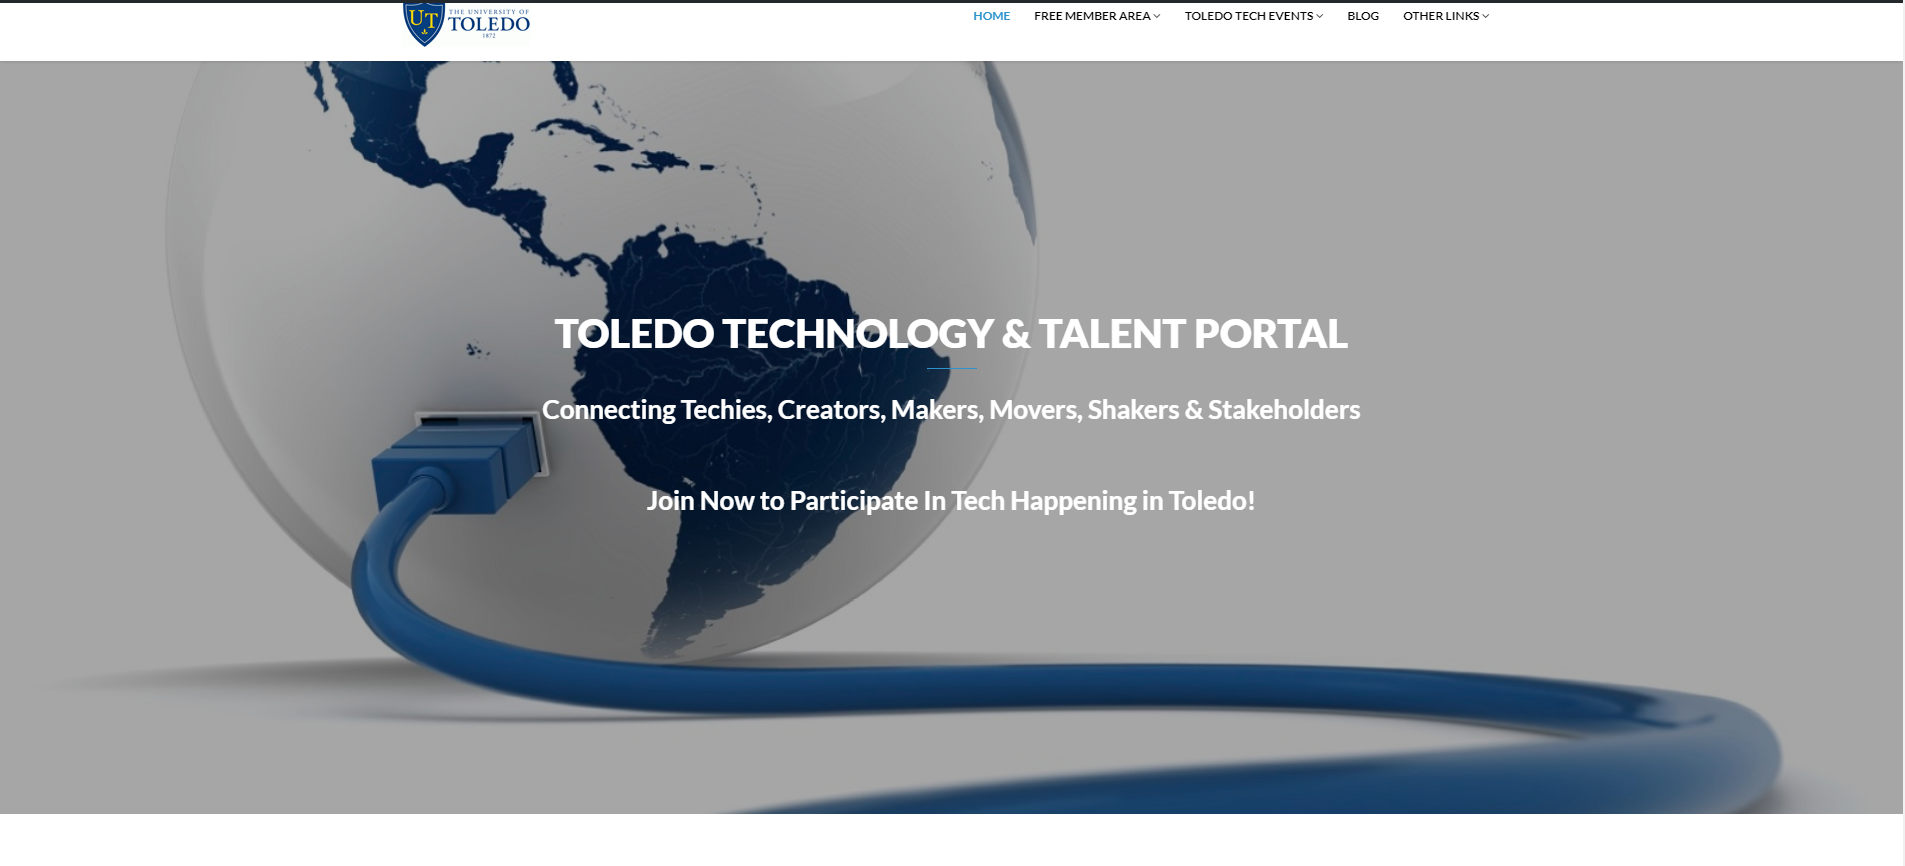 Toledo WordPress Website Design, WordPress Development, SEO, Copy, Content, Project Lead